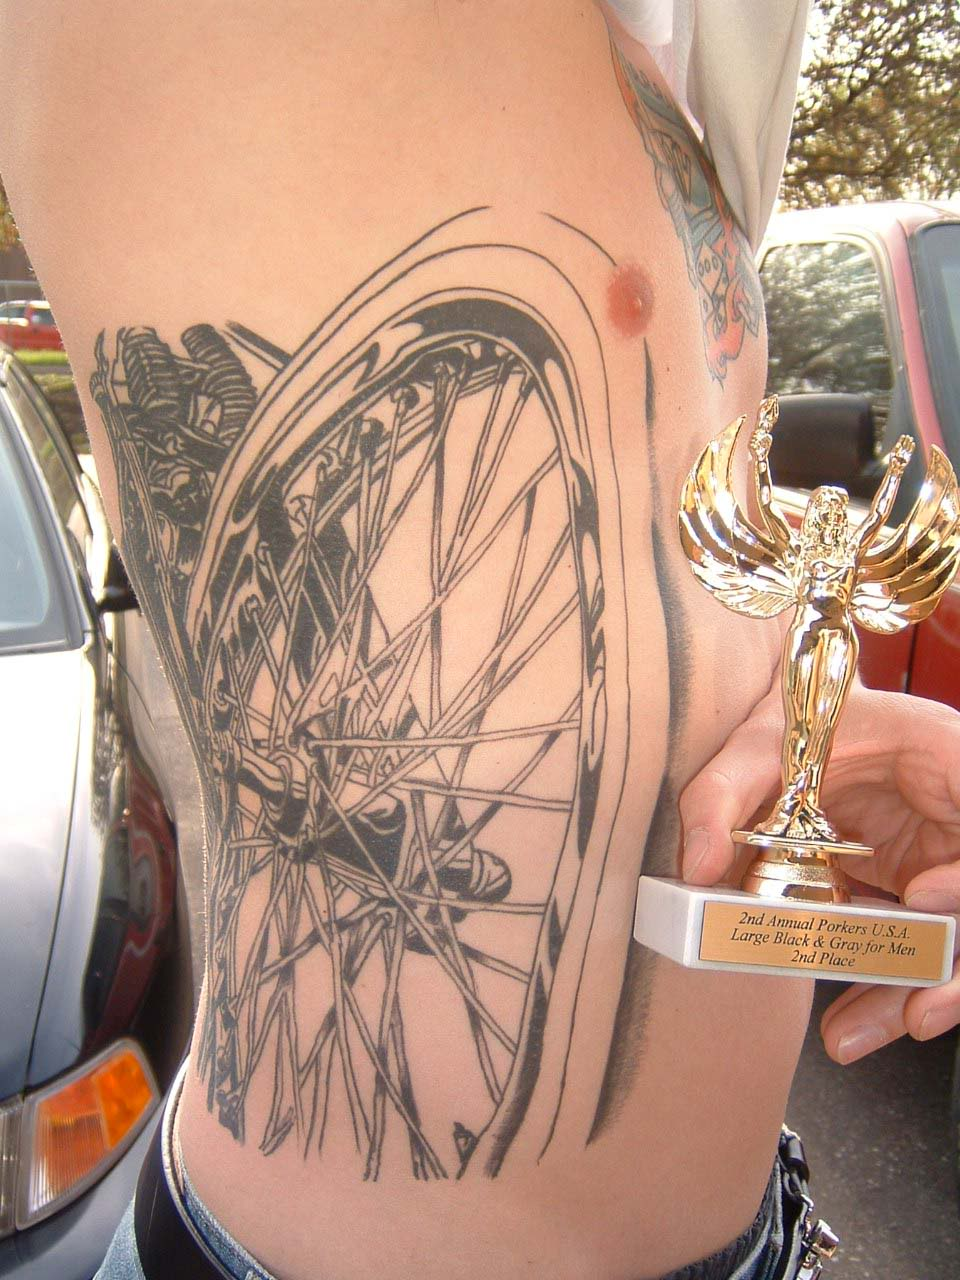 Tattoos for Men 2011: Rib Cage Tattoos Design Ideas For Men And Women